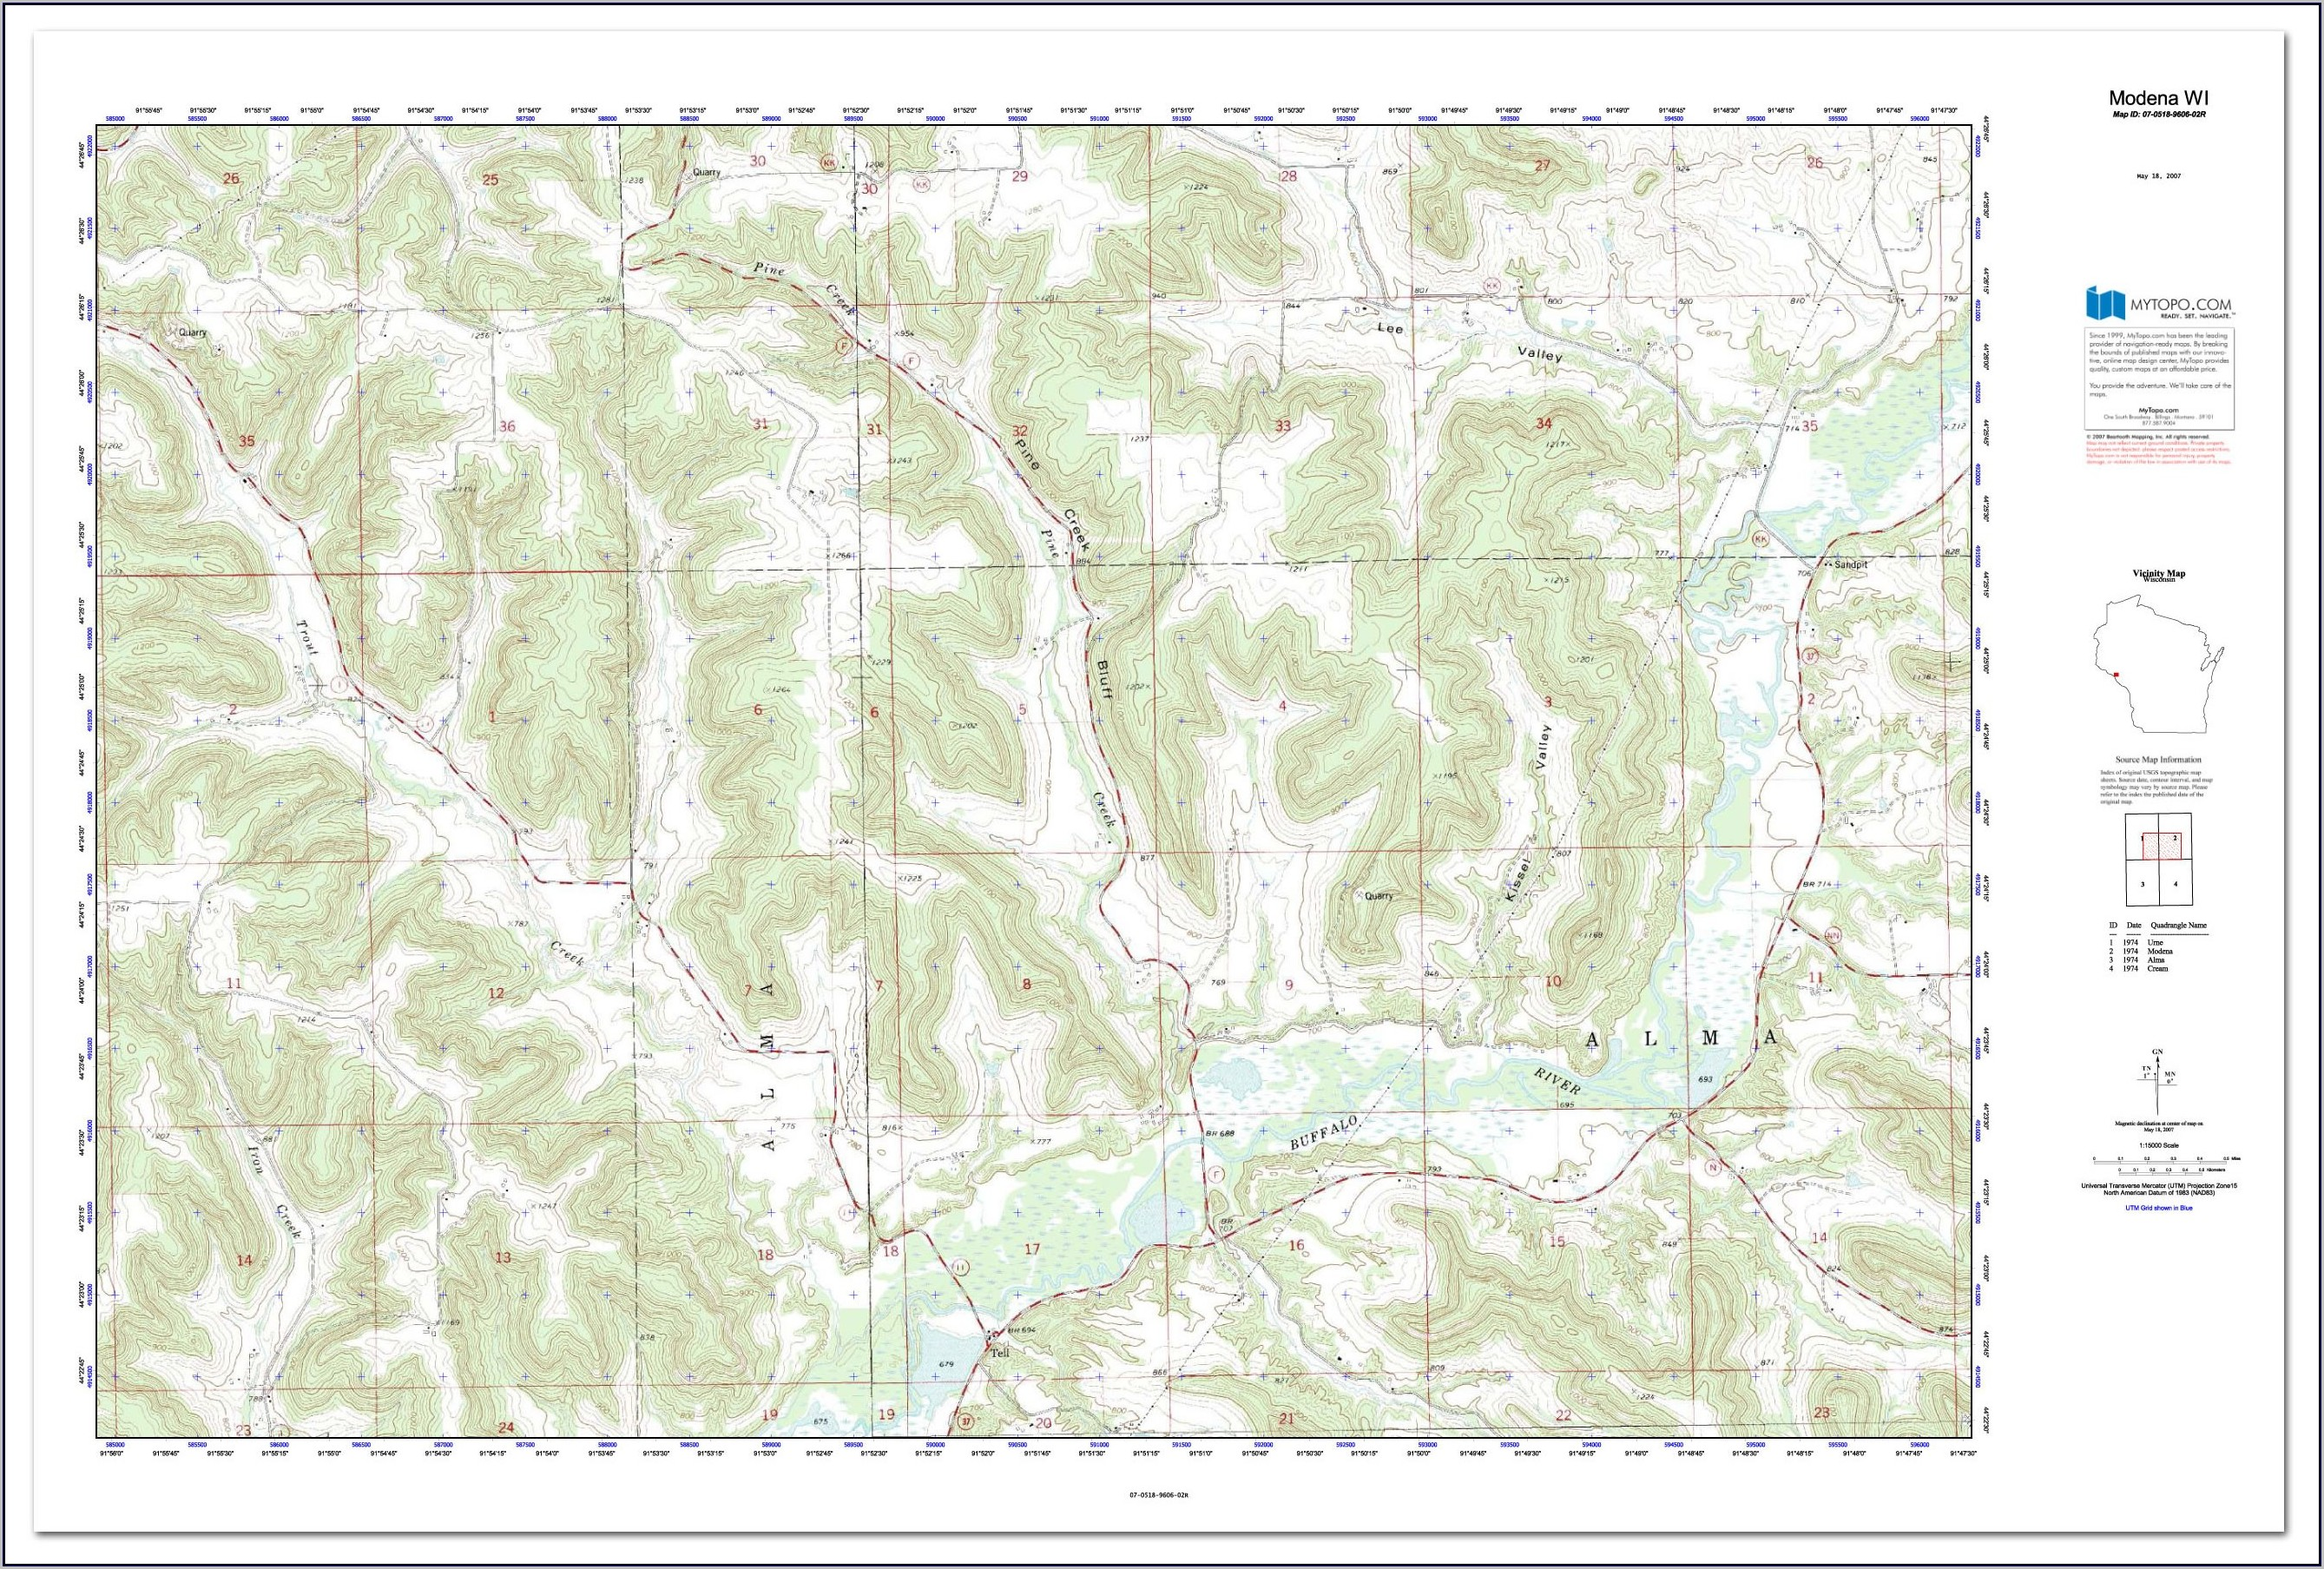 Topo Maps For Sale - Map : Resume Examples #q78Q2qN1g9